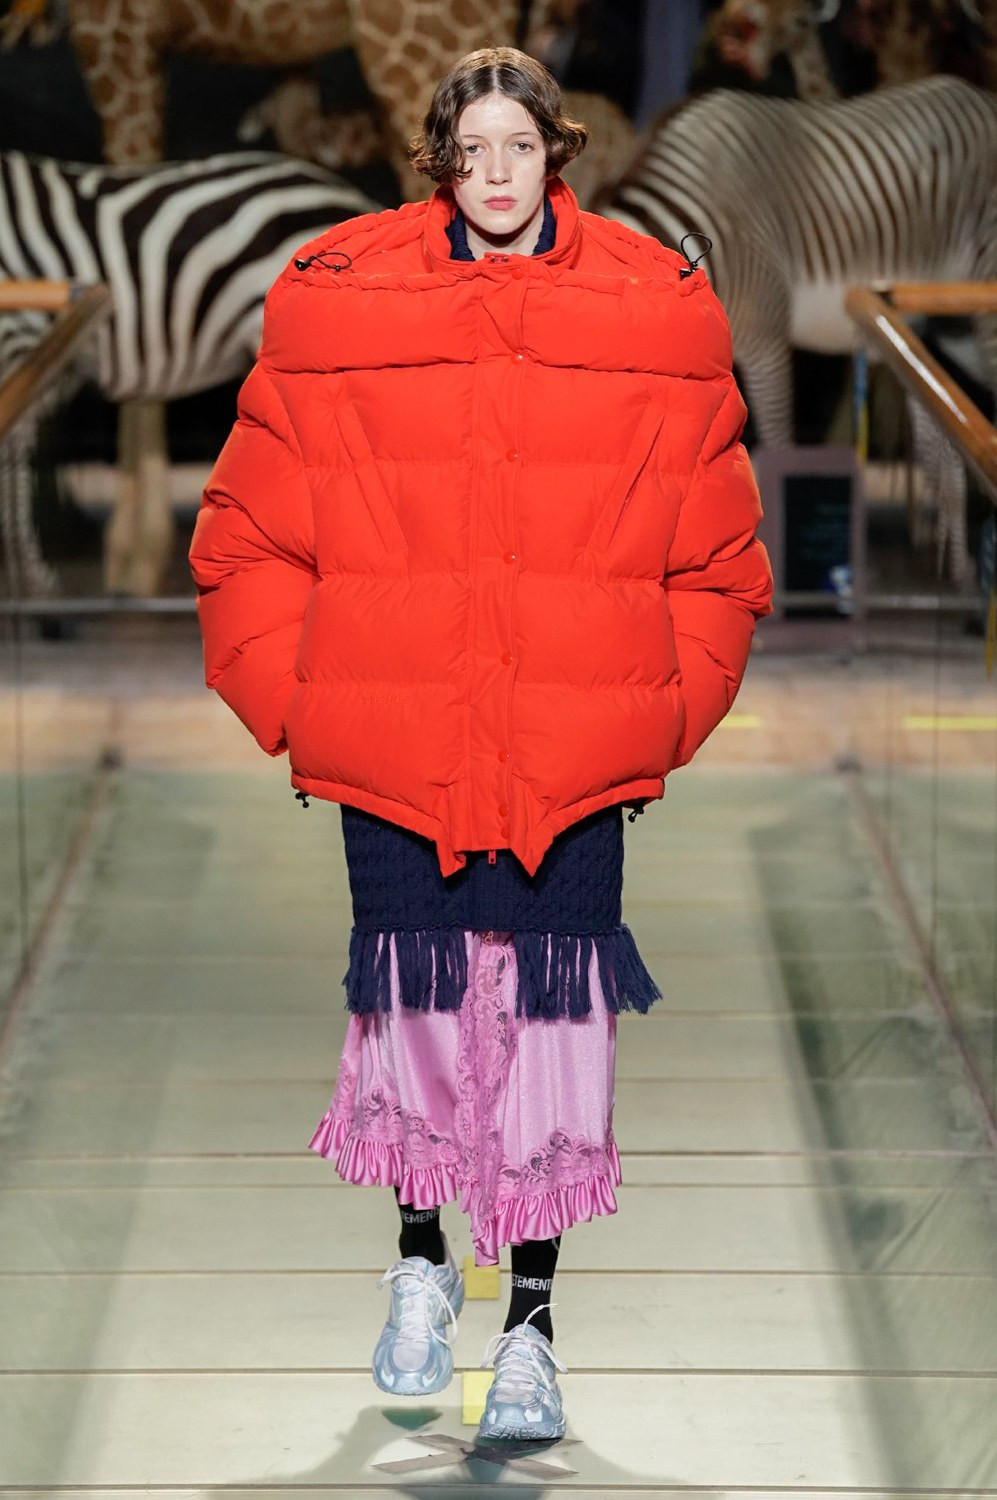 https---vetements-aw19-dtf-magazine.com-image-2019-01-vetements-fall-winter-2019-paris-fashion-week-21